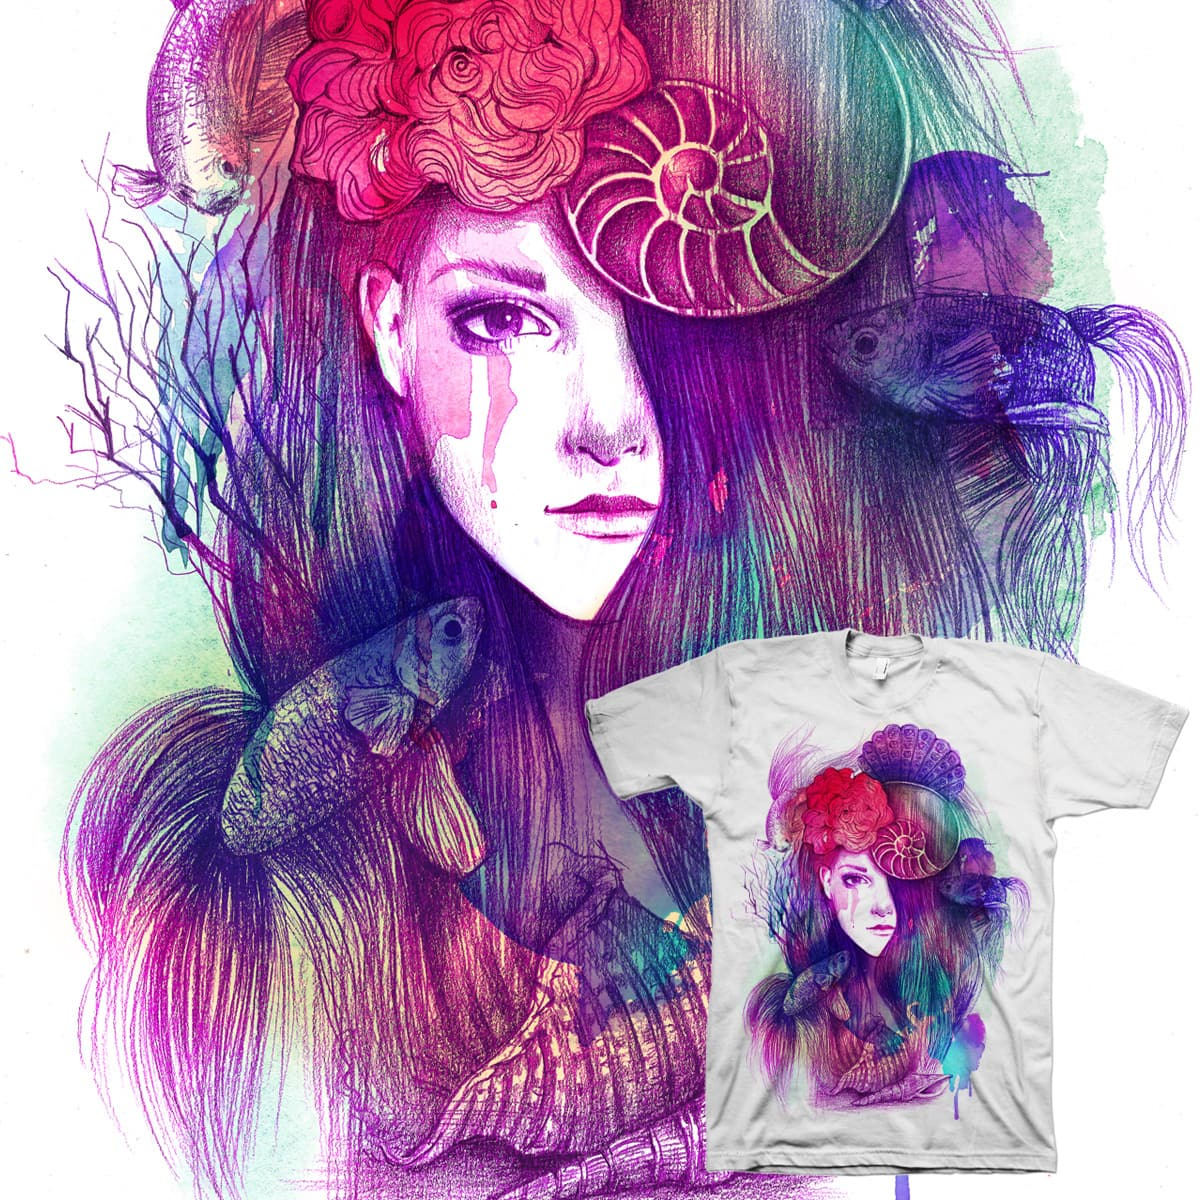 The Endless Sea by NandaCorrea on Threadless